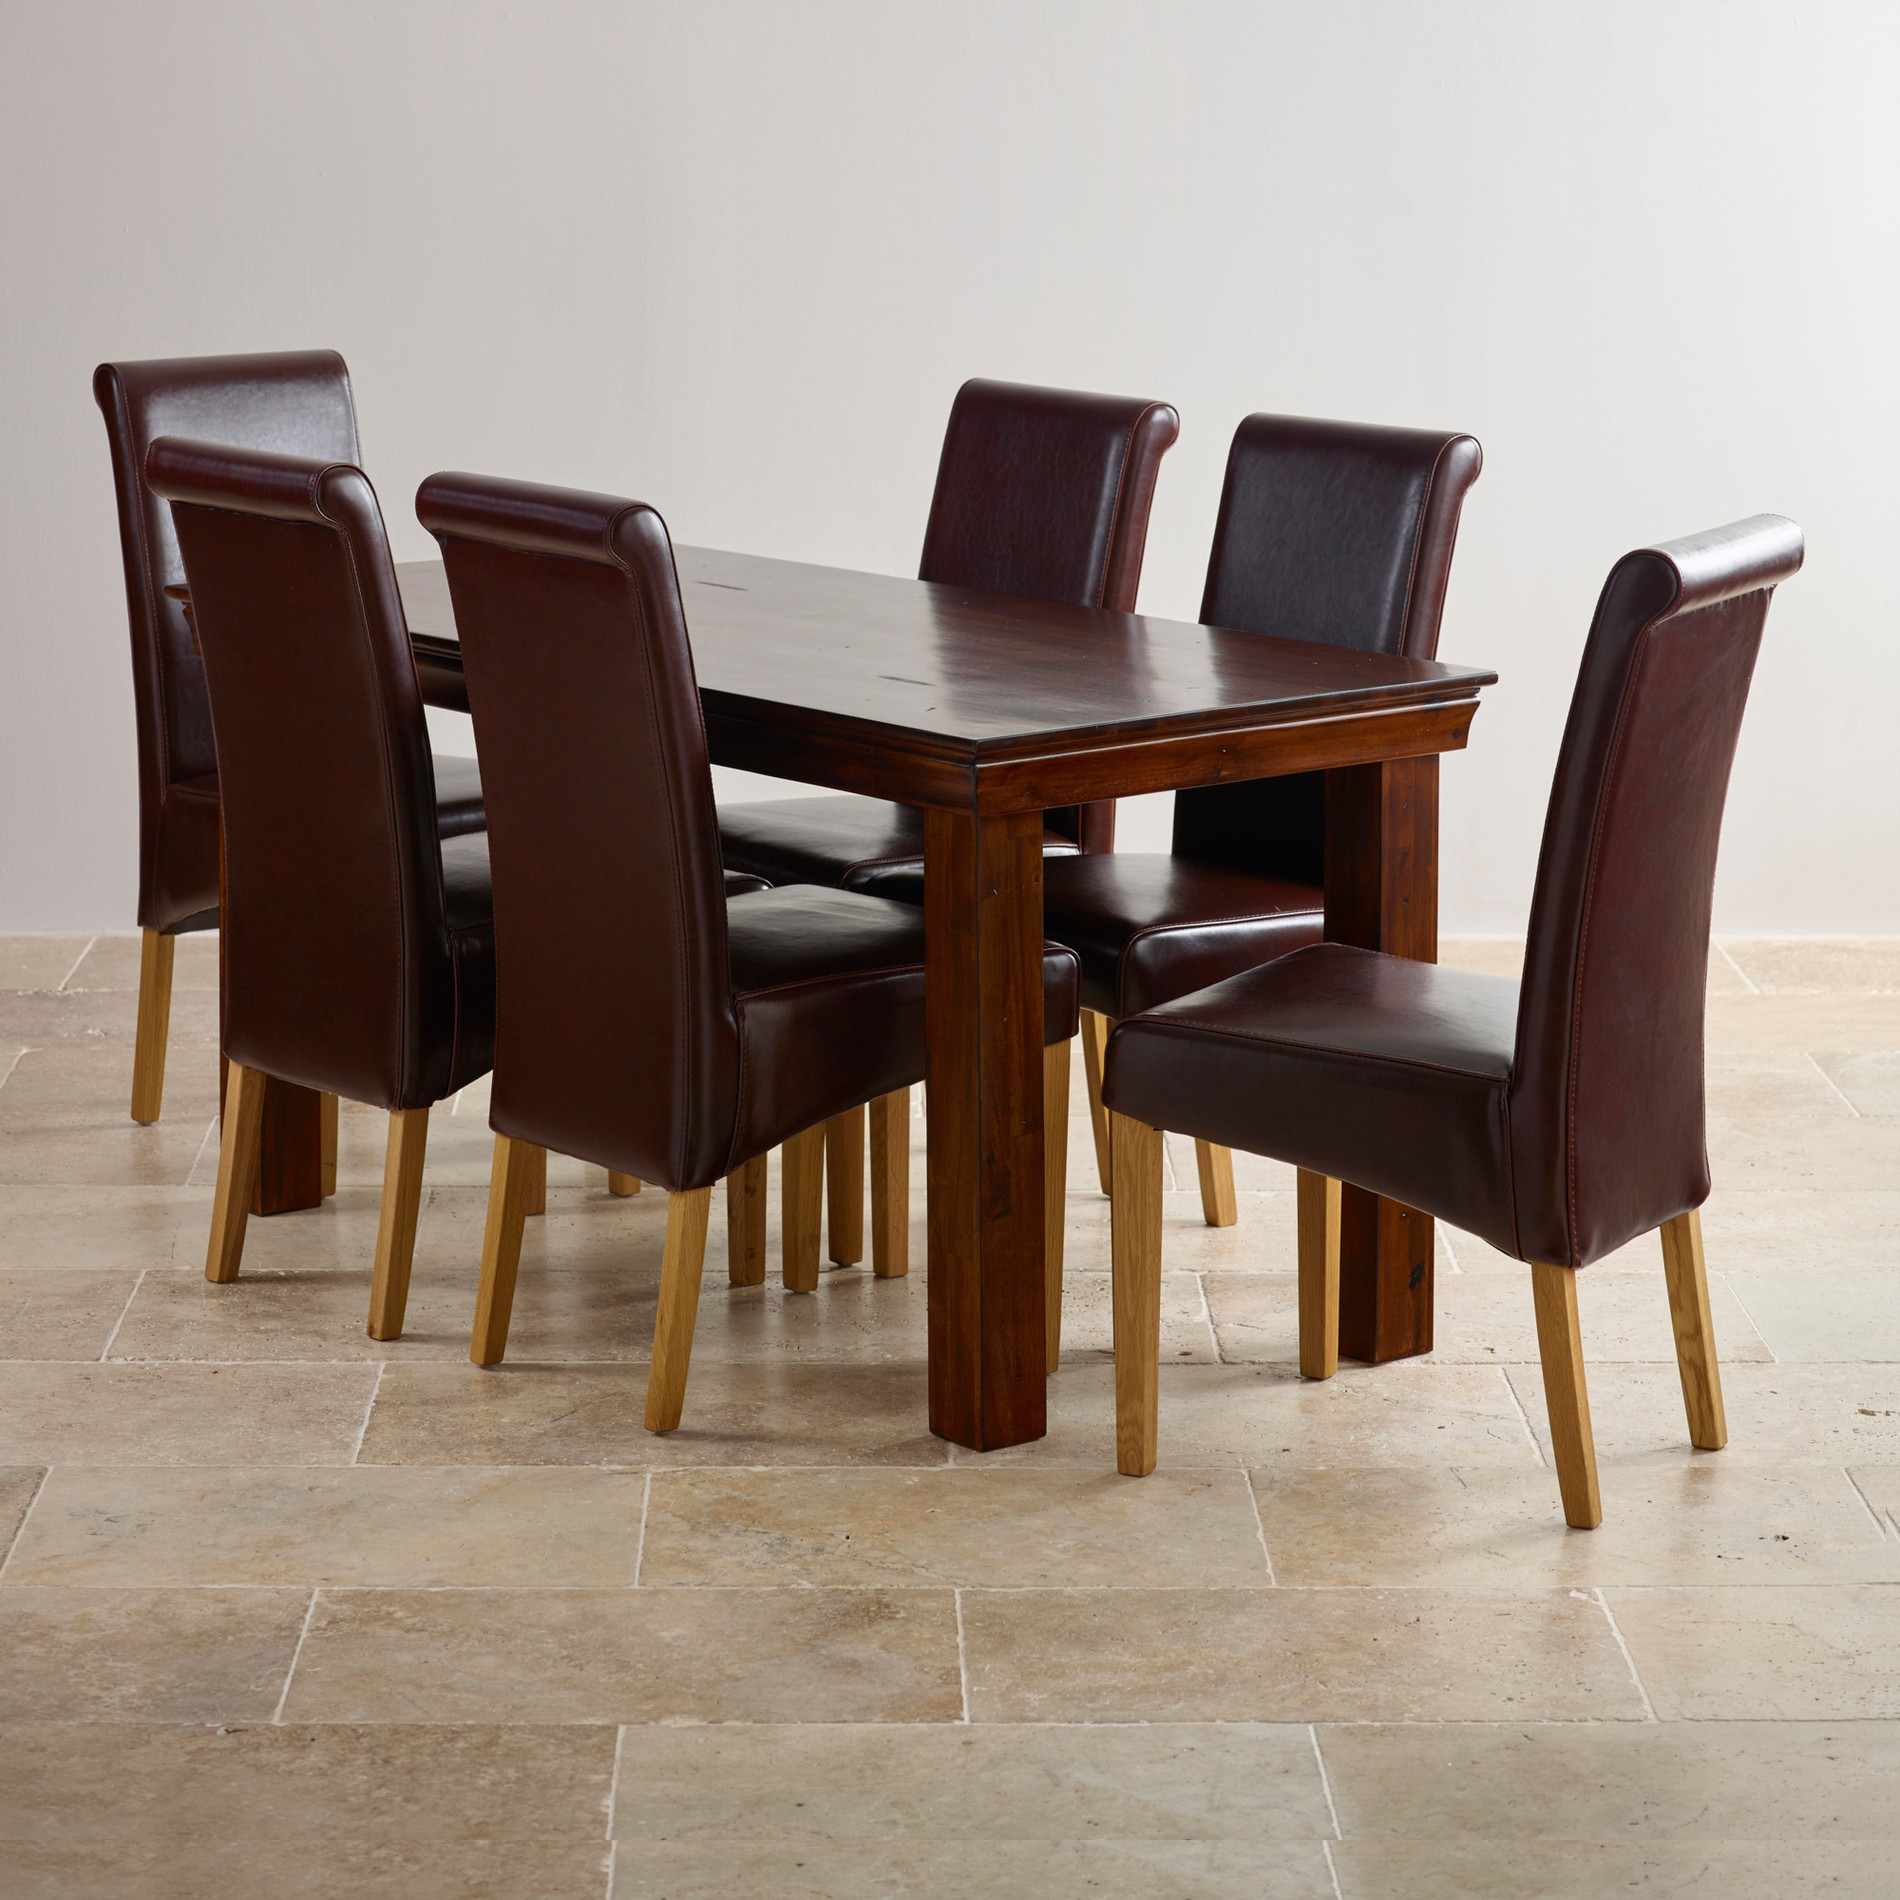 Leather Dining Set: Victoria Extending Dining Set In Acacia: Table + 6 Leather